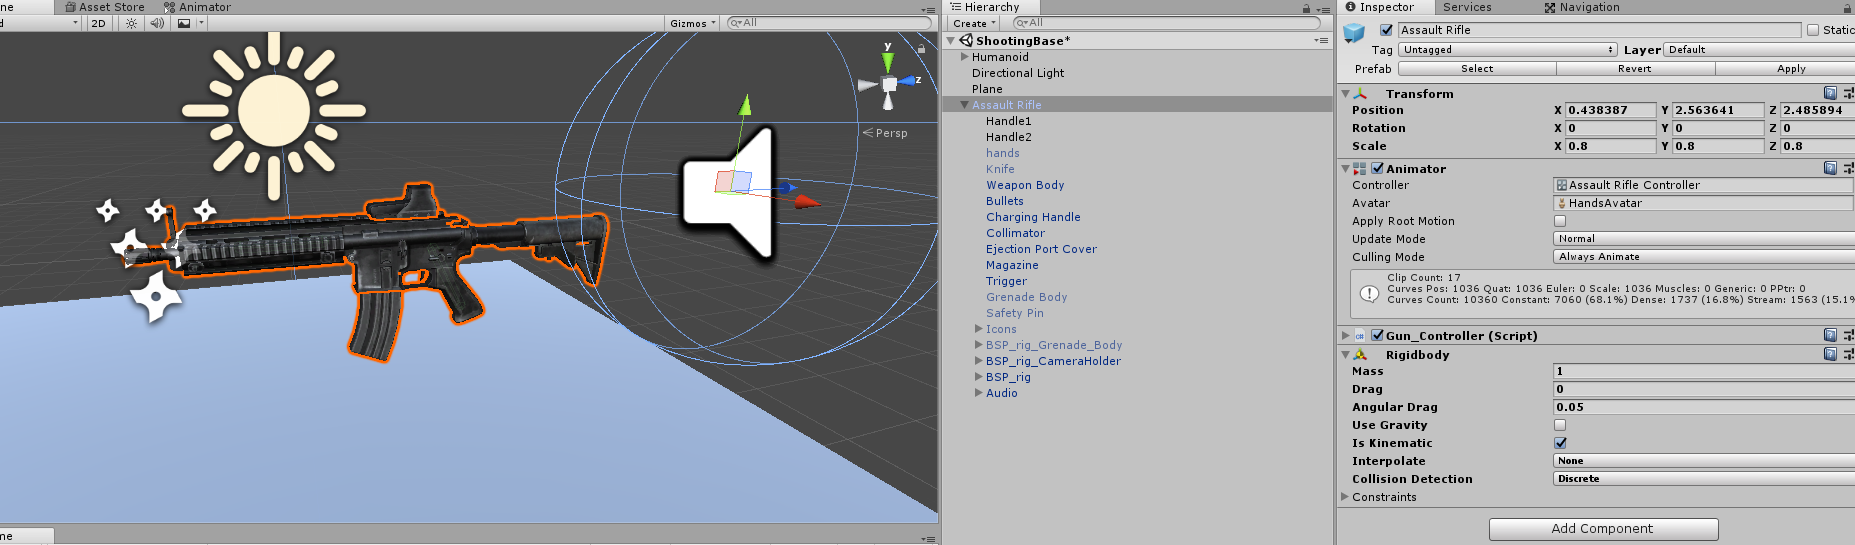 Unable to grab object with Oculus Touch - Unity Forum